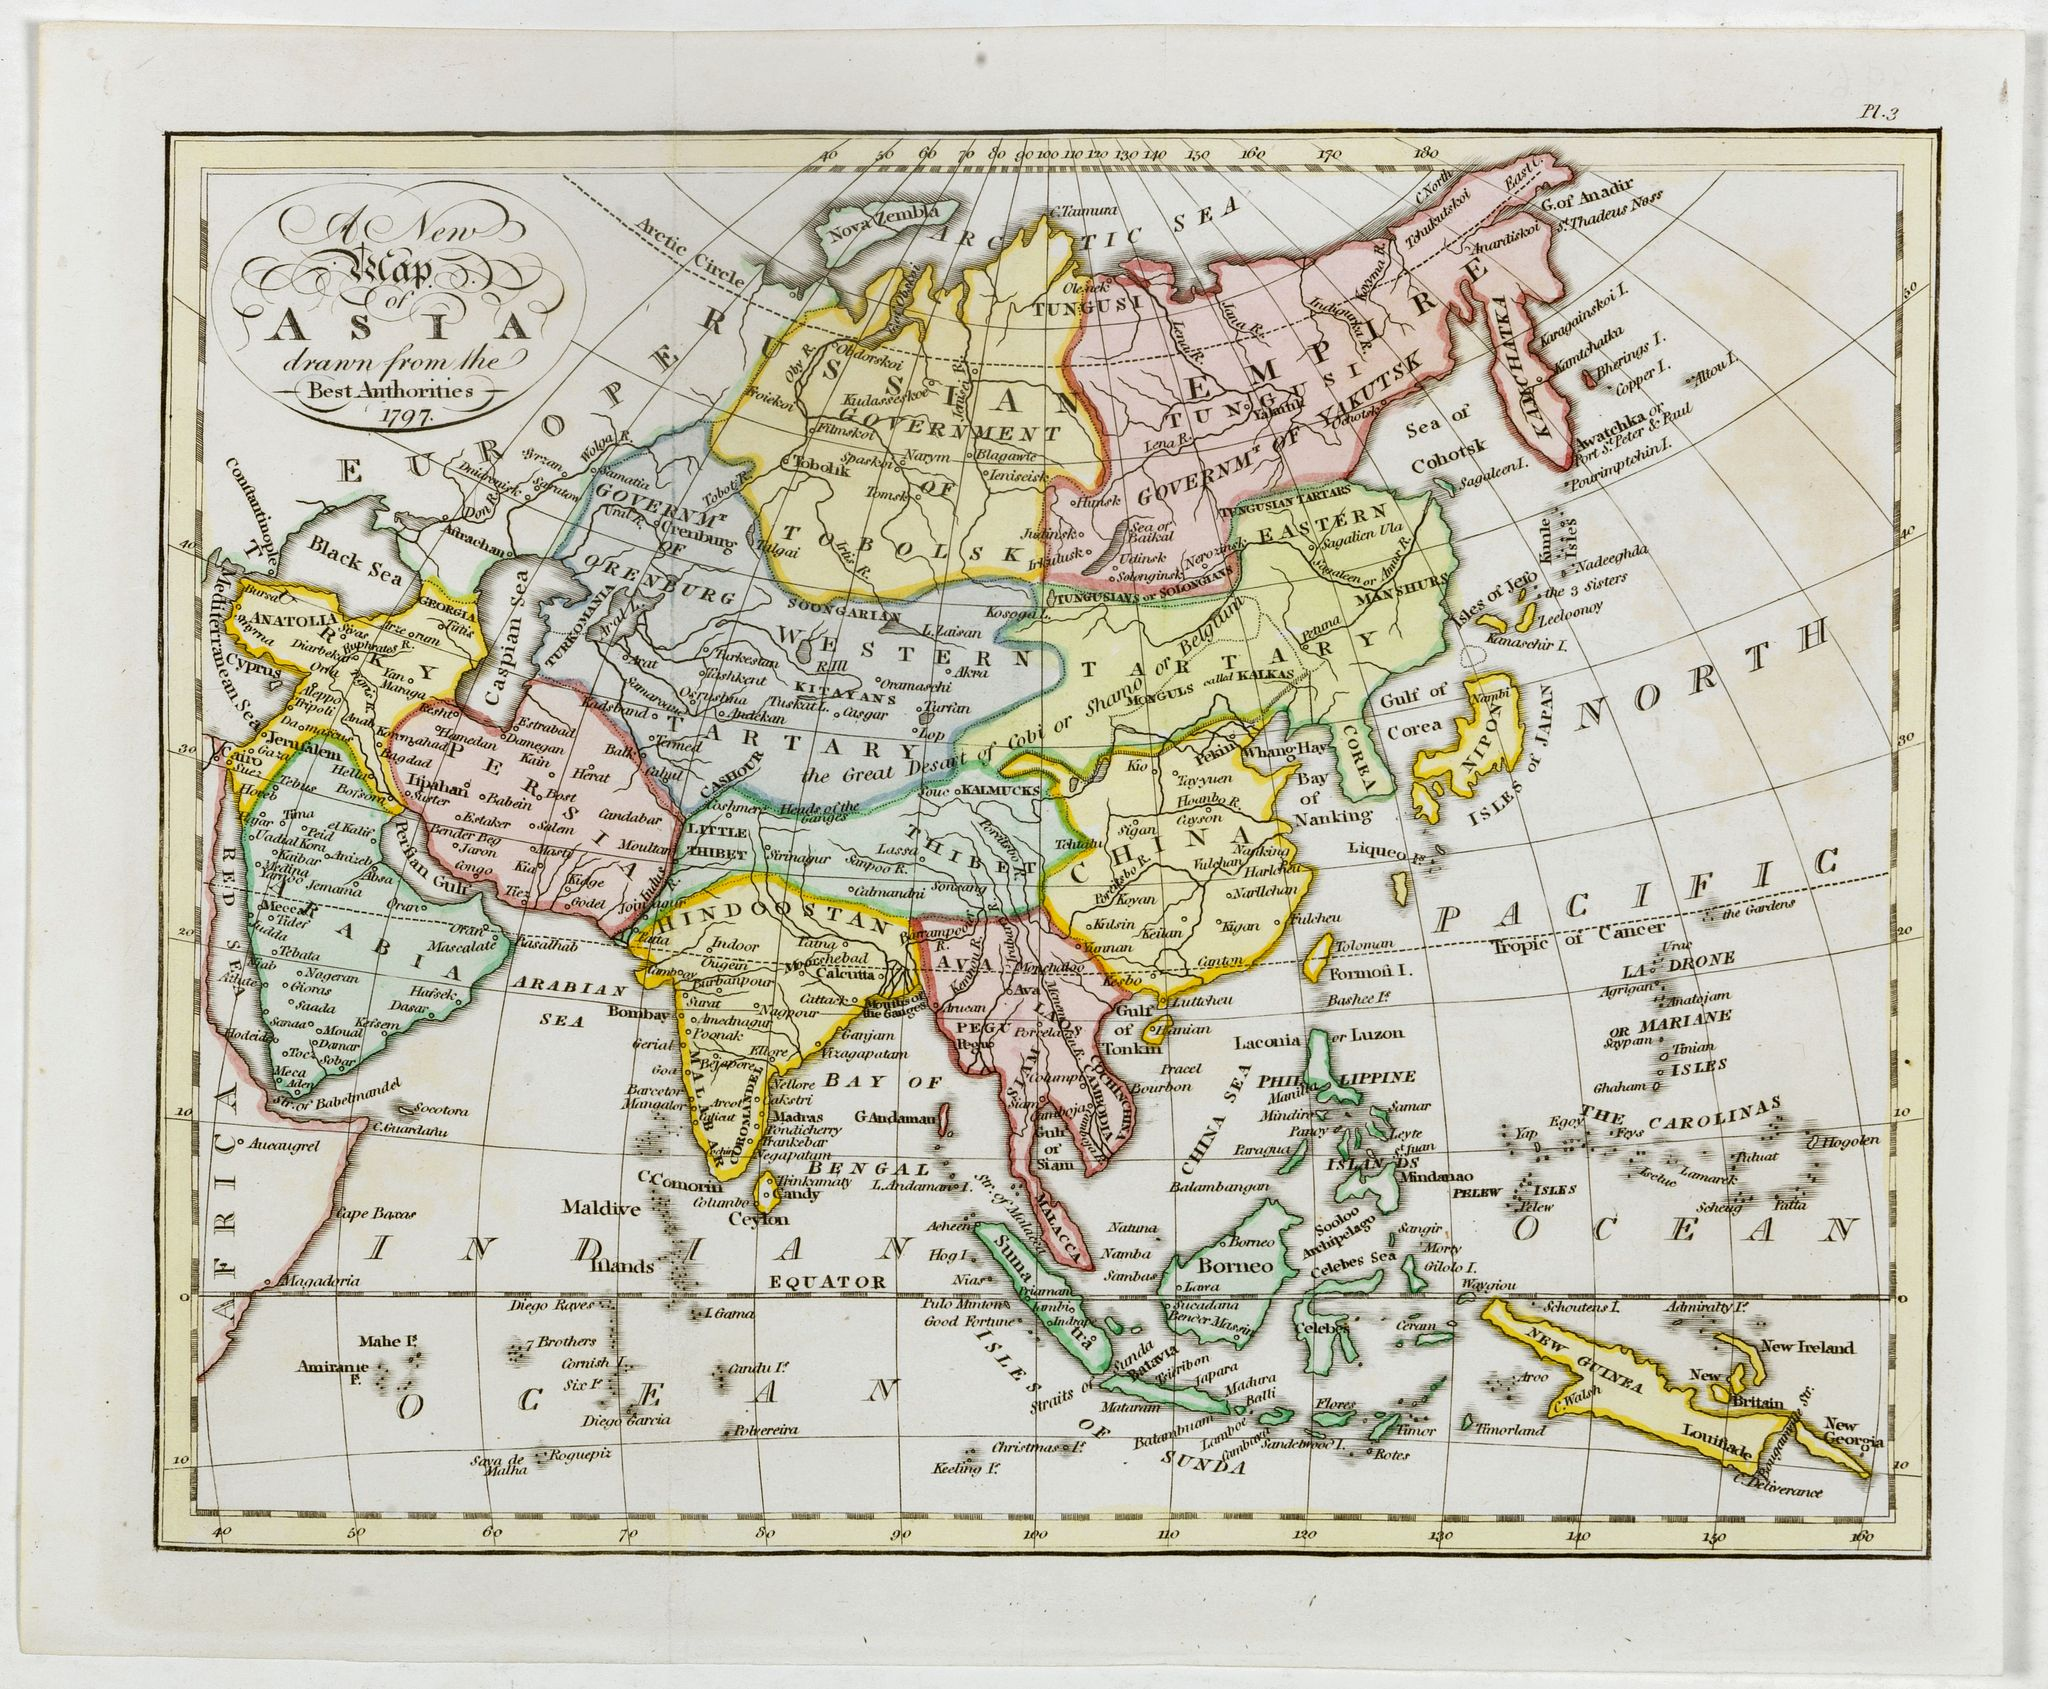 CADELL / DAVIES -  A New Map of Asia, Drawn from the Best Authorities 1797.